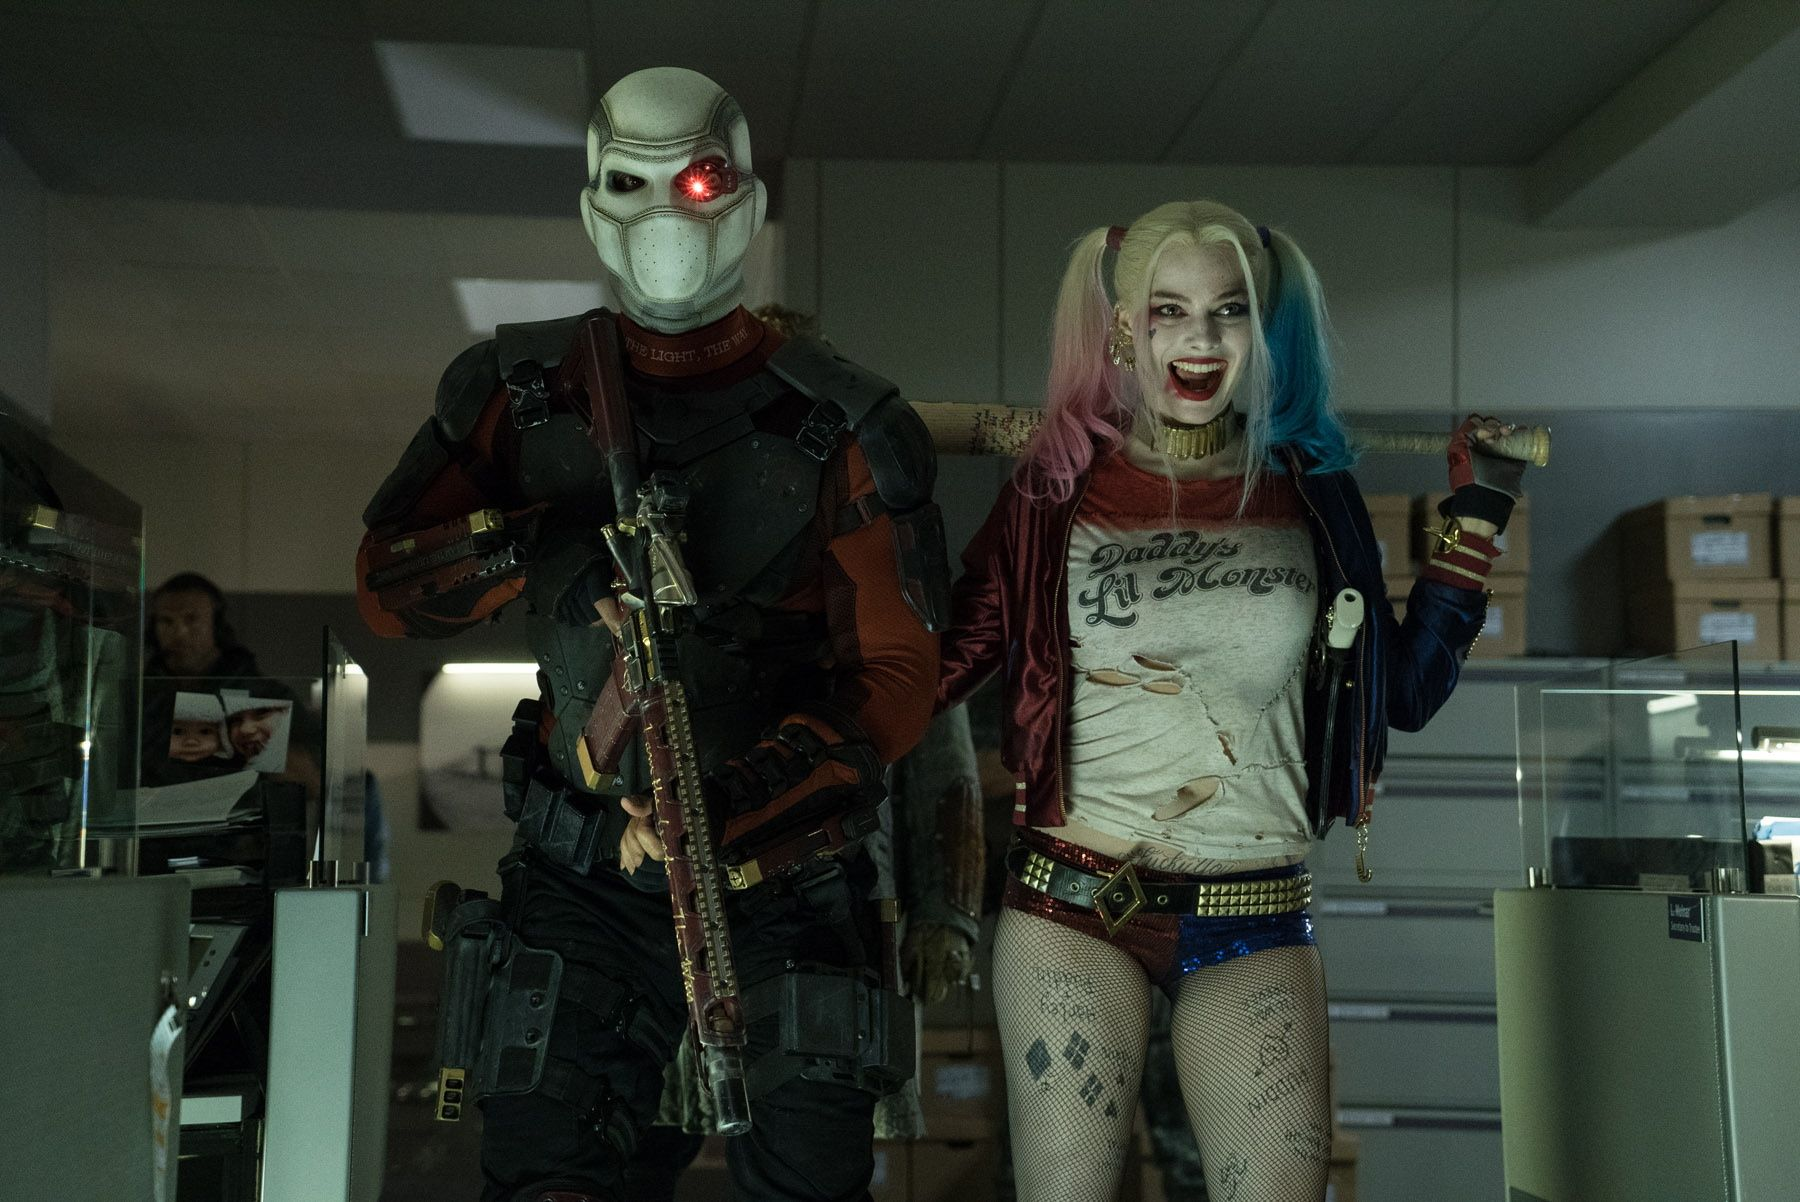 http://cdn.collider.com/wp-content/uploads/2016/07/suicide-squad-will-smith-deadshot-margot-robbie-harley-quinn.jpg